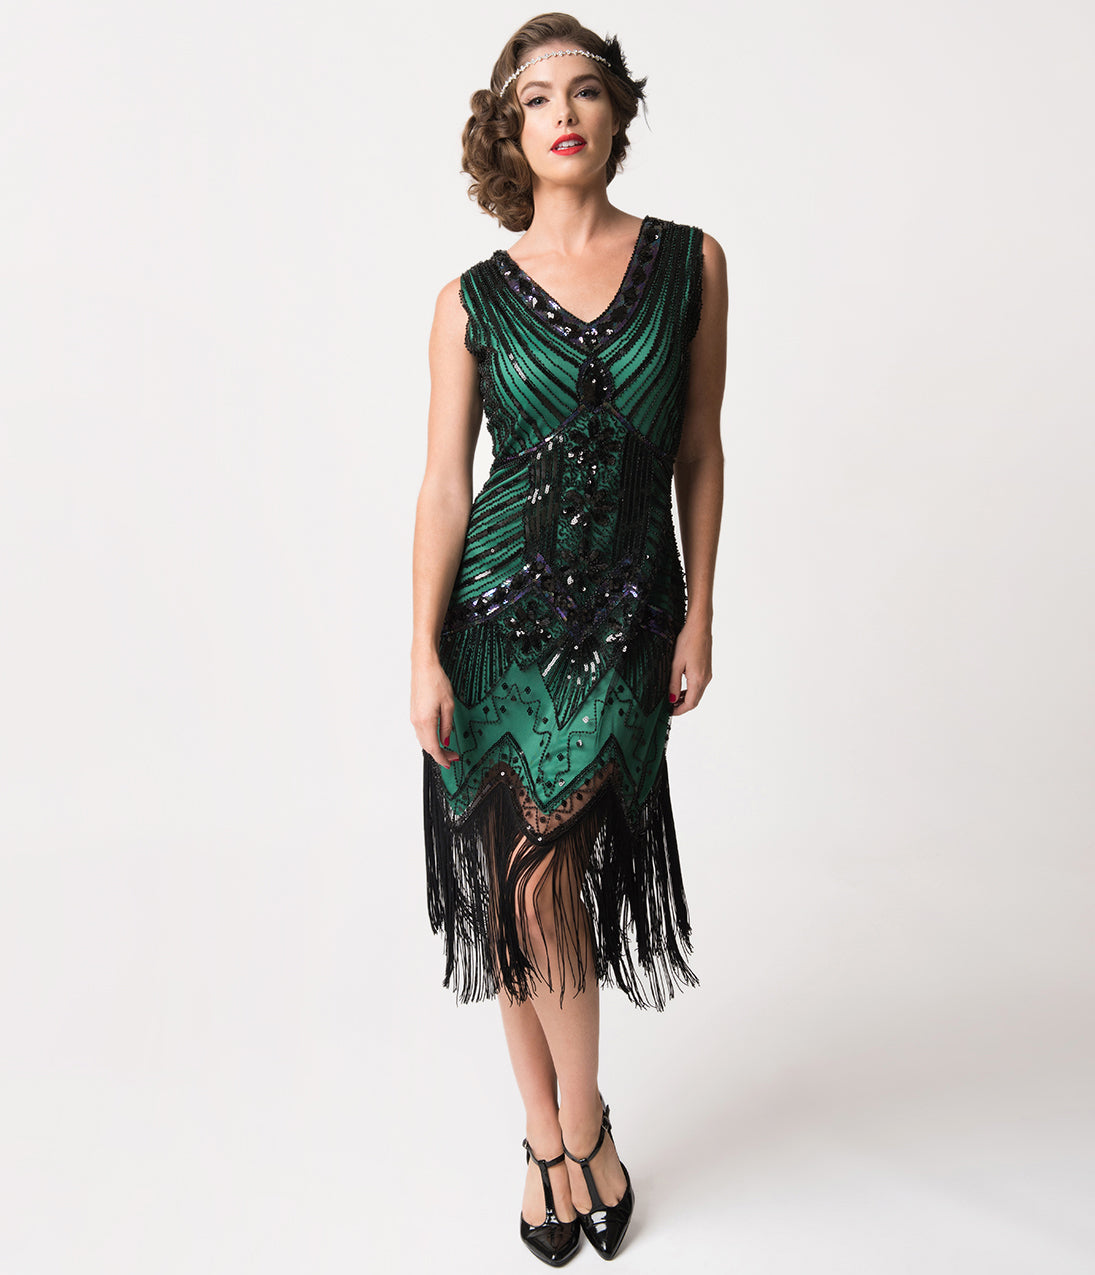 1920s Downton Abbey Fashion Unique Vintage 1920S Deco Green  Black Sequin Veronique Fringe Flapper Dress $98.00 AT vintagedancer.com